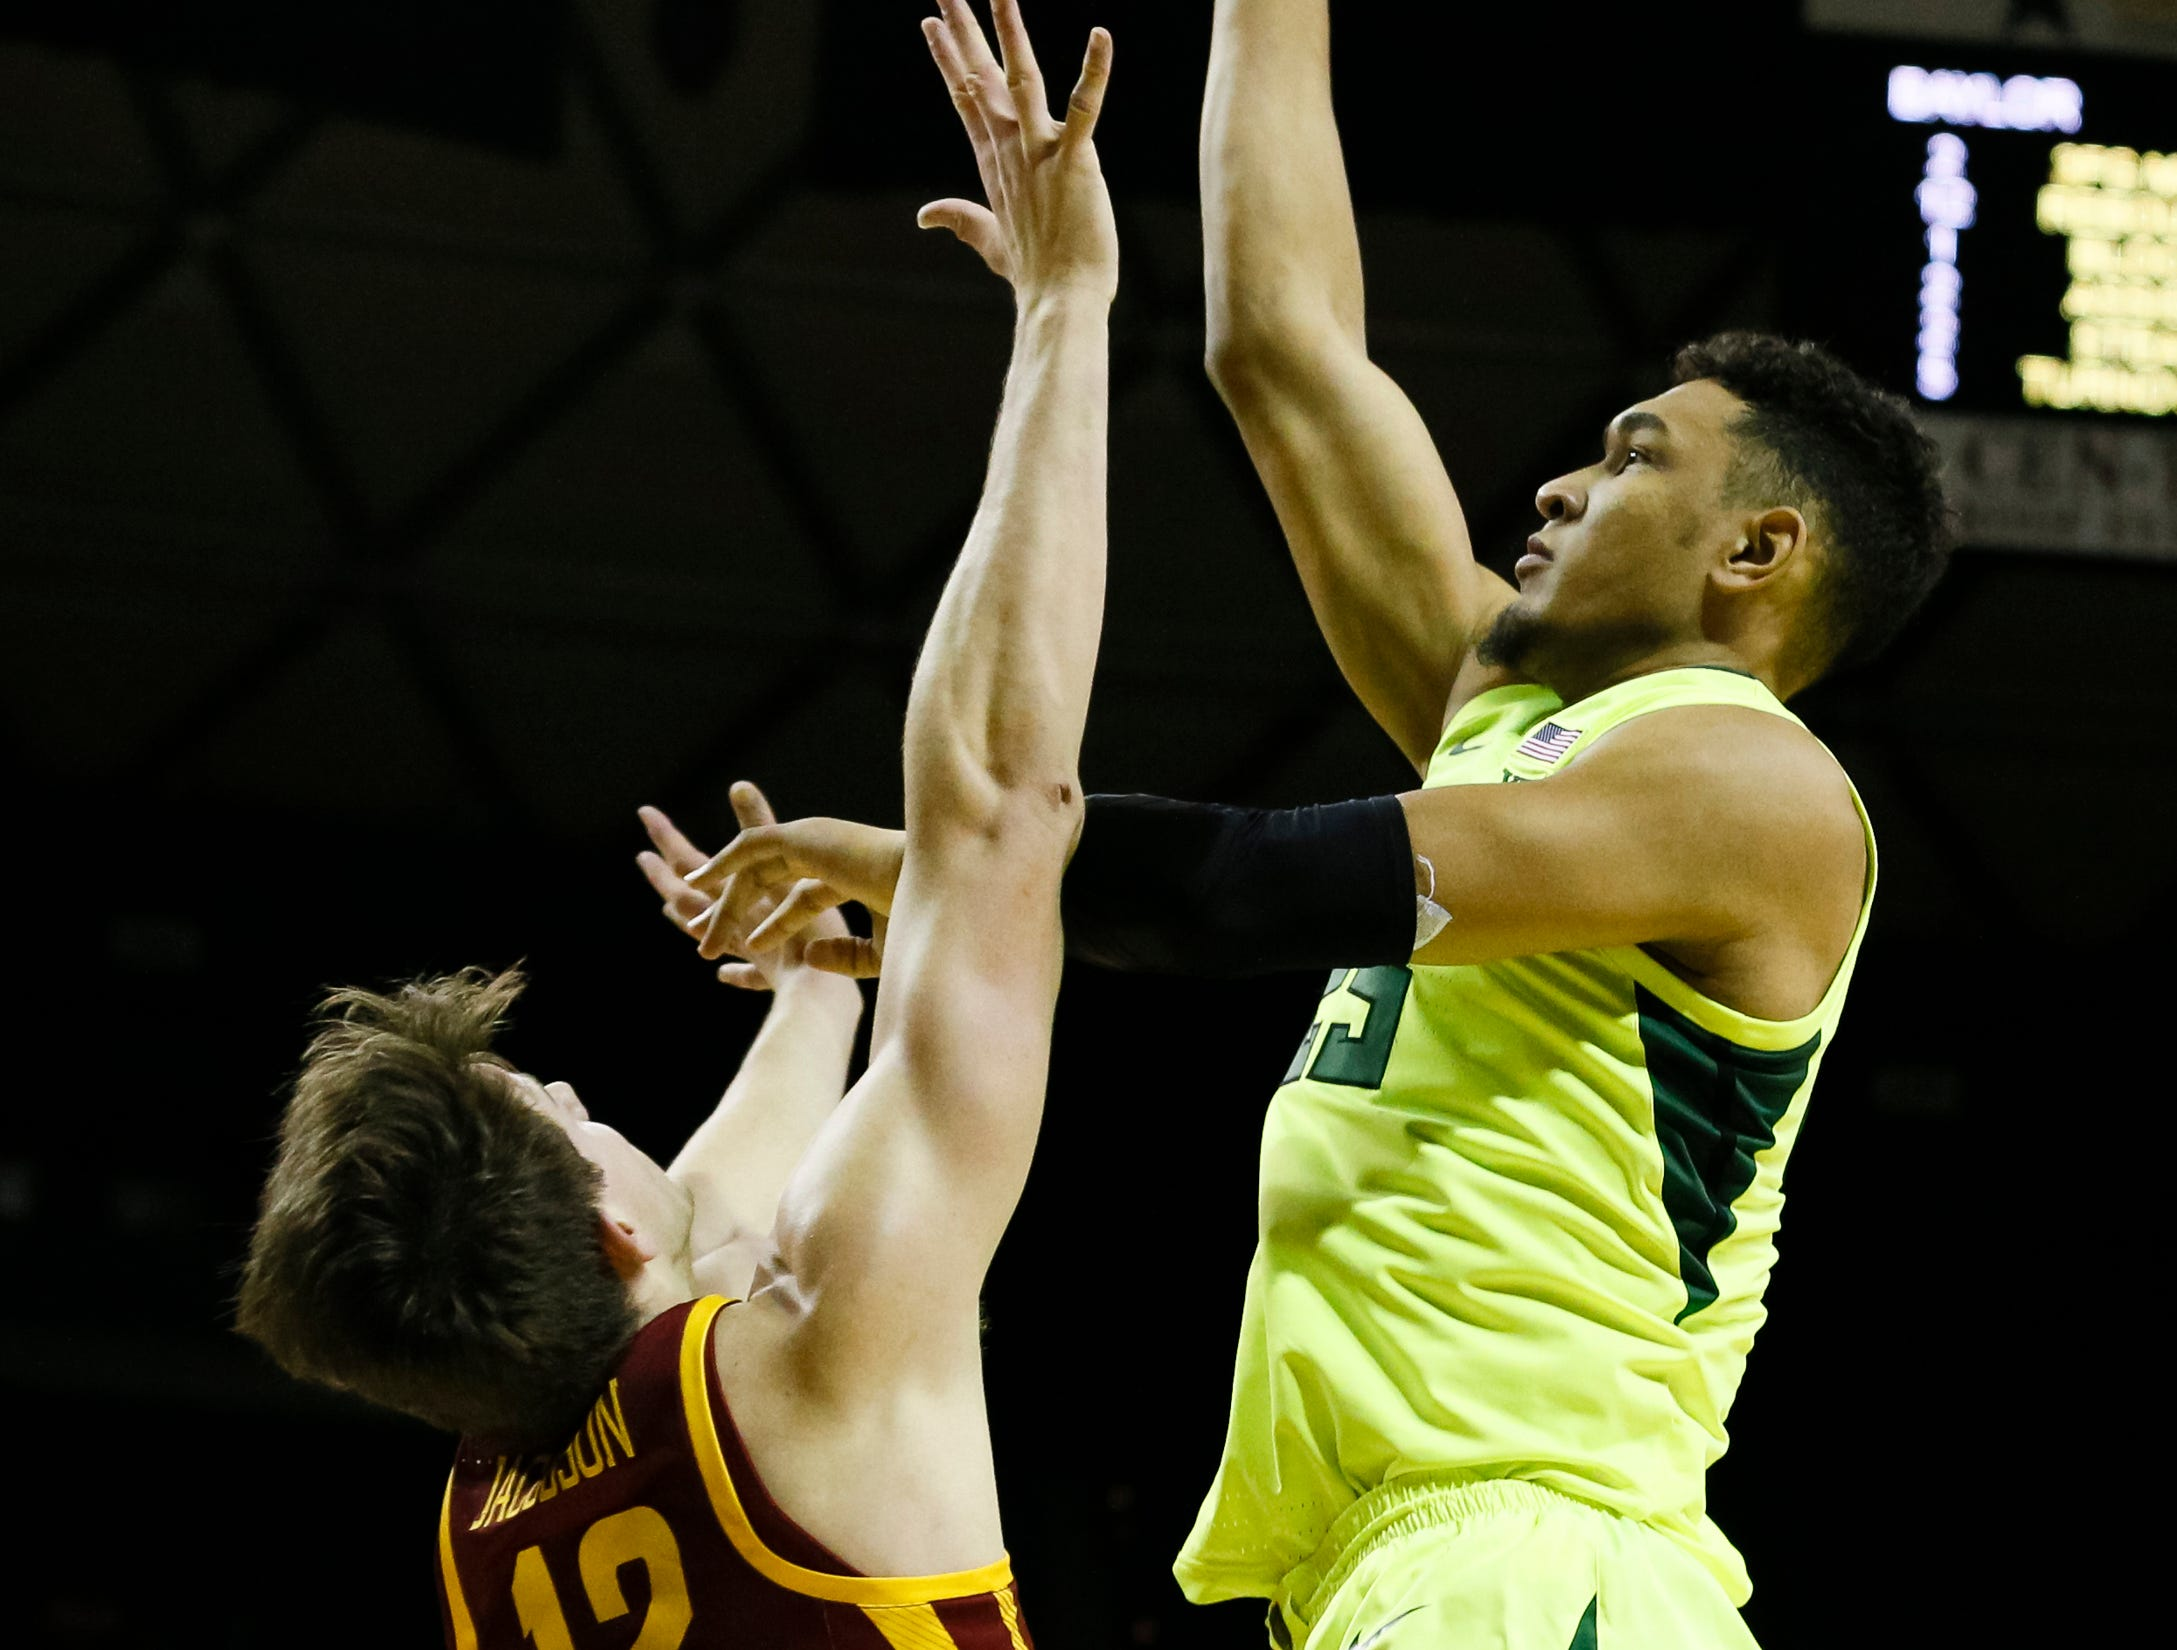 Baylor Bears forward Tristan Clark (right) shoots over Iowa State Cyclones forward Michael Jacobson (12) during the first half at Ferrell Center.